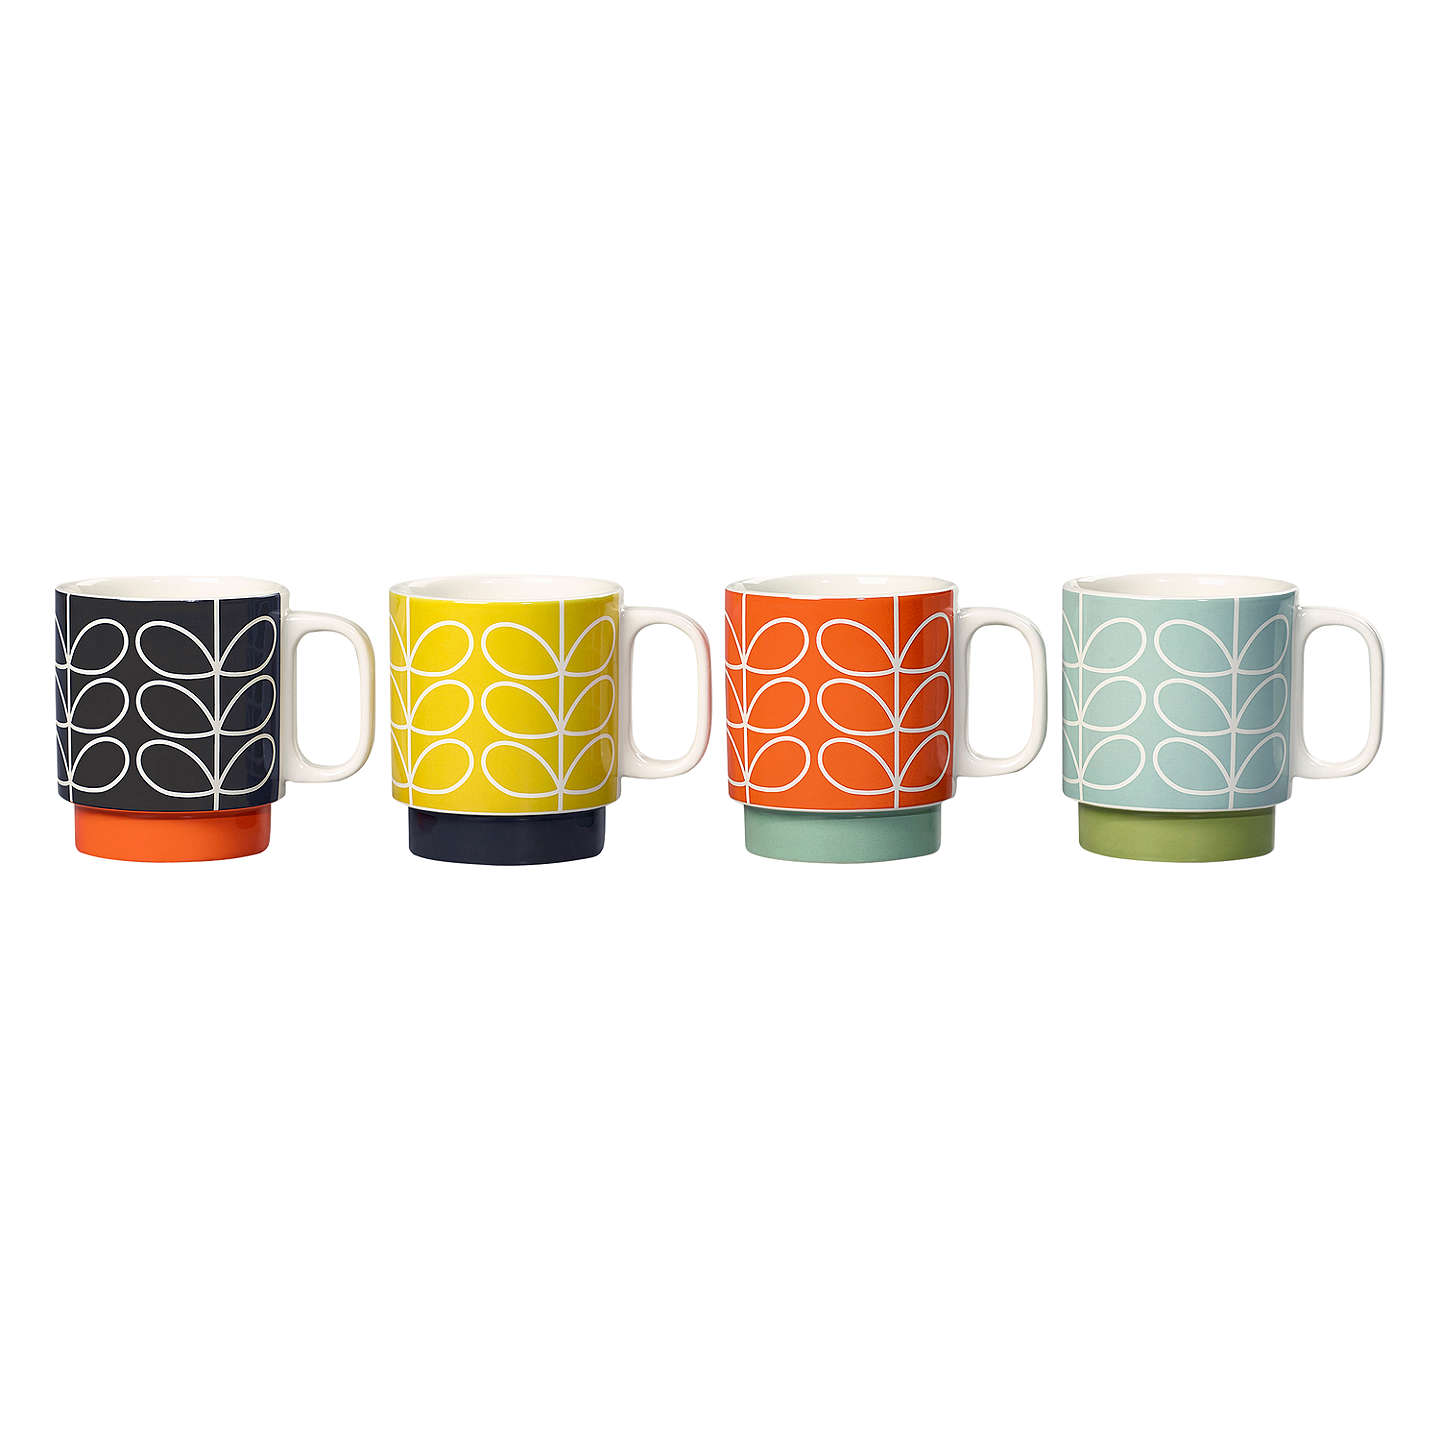 BuyOrla Kiely Raised Linear Stem Stacking Mugs, Set of 4, Multi, 330ml Online at johnlewis.com